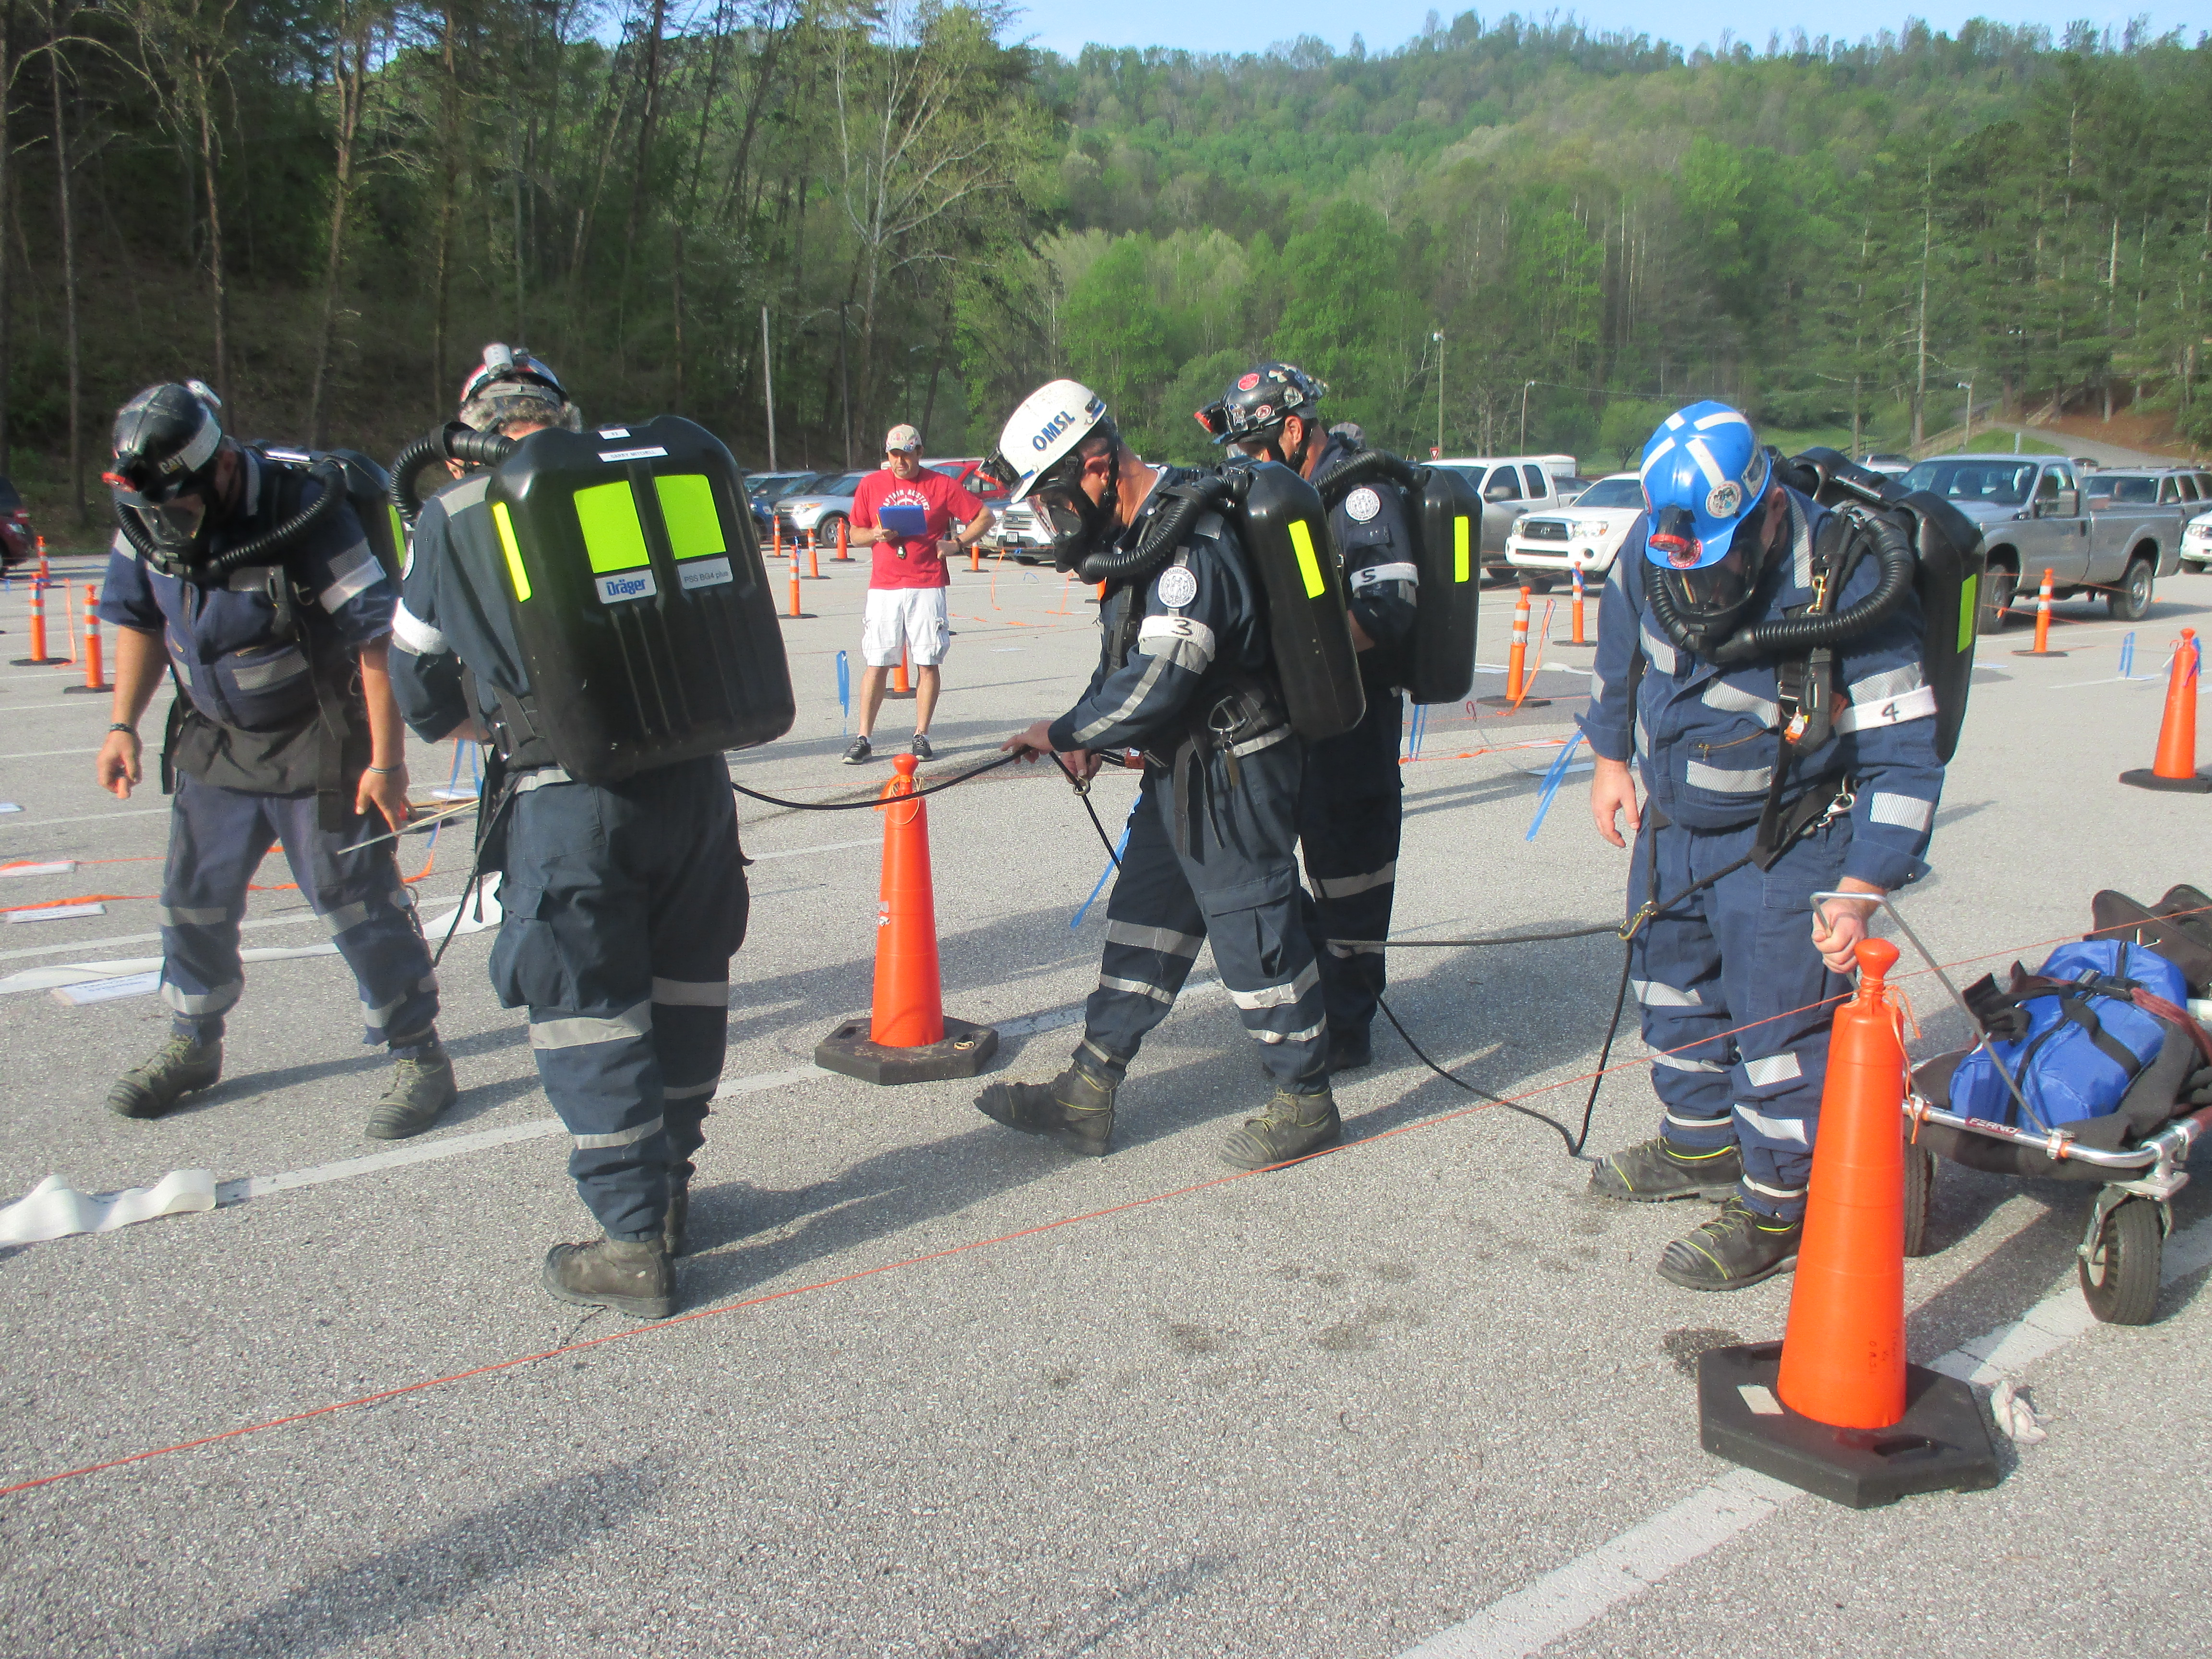 Mine Safety Competition at Jenny Wiley State Park Sharpens Skills